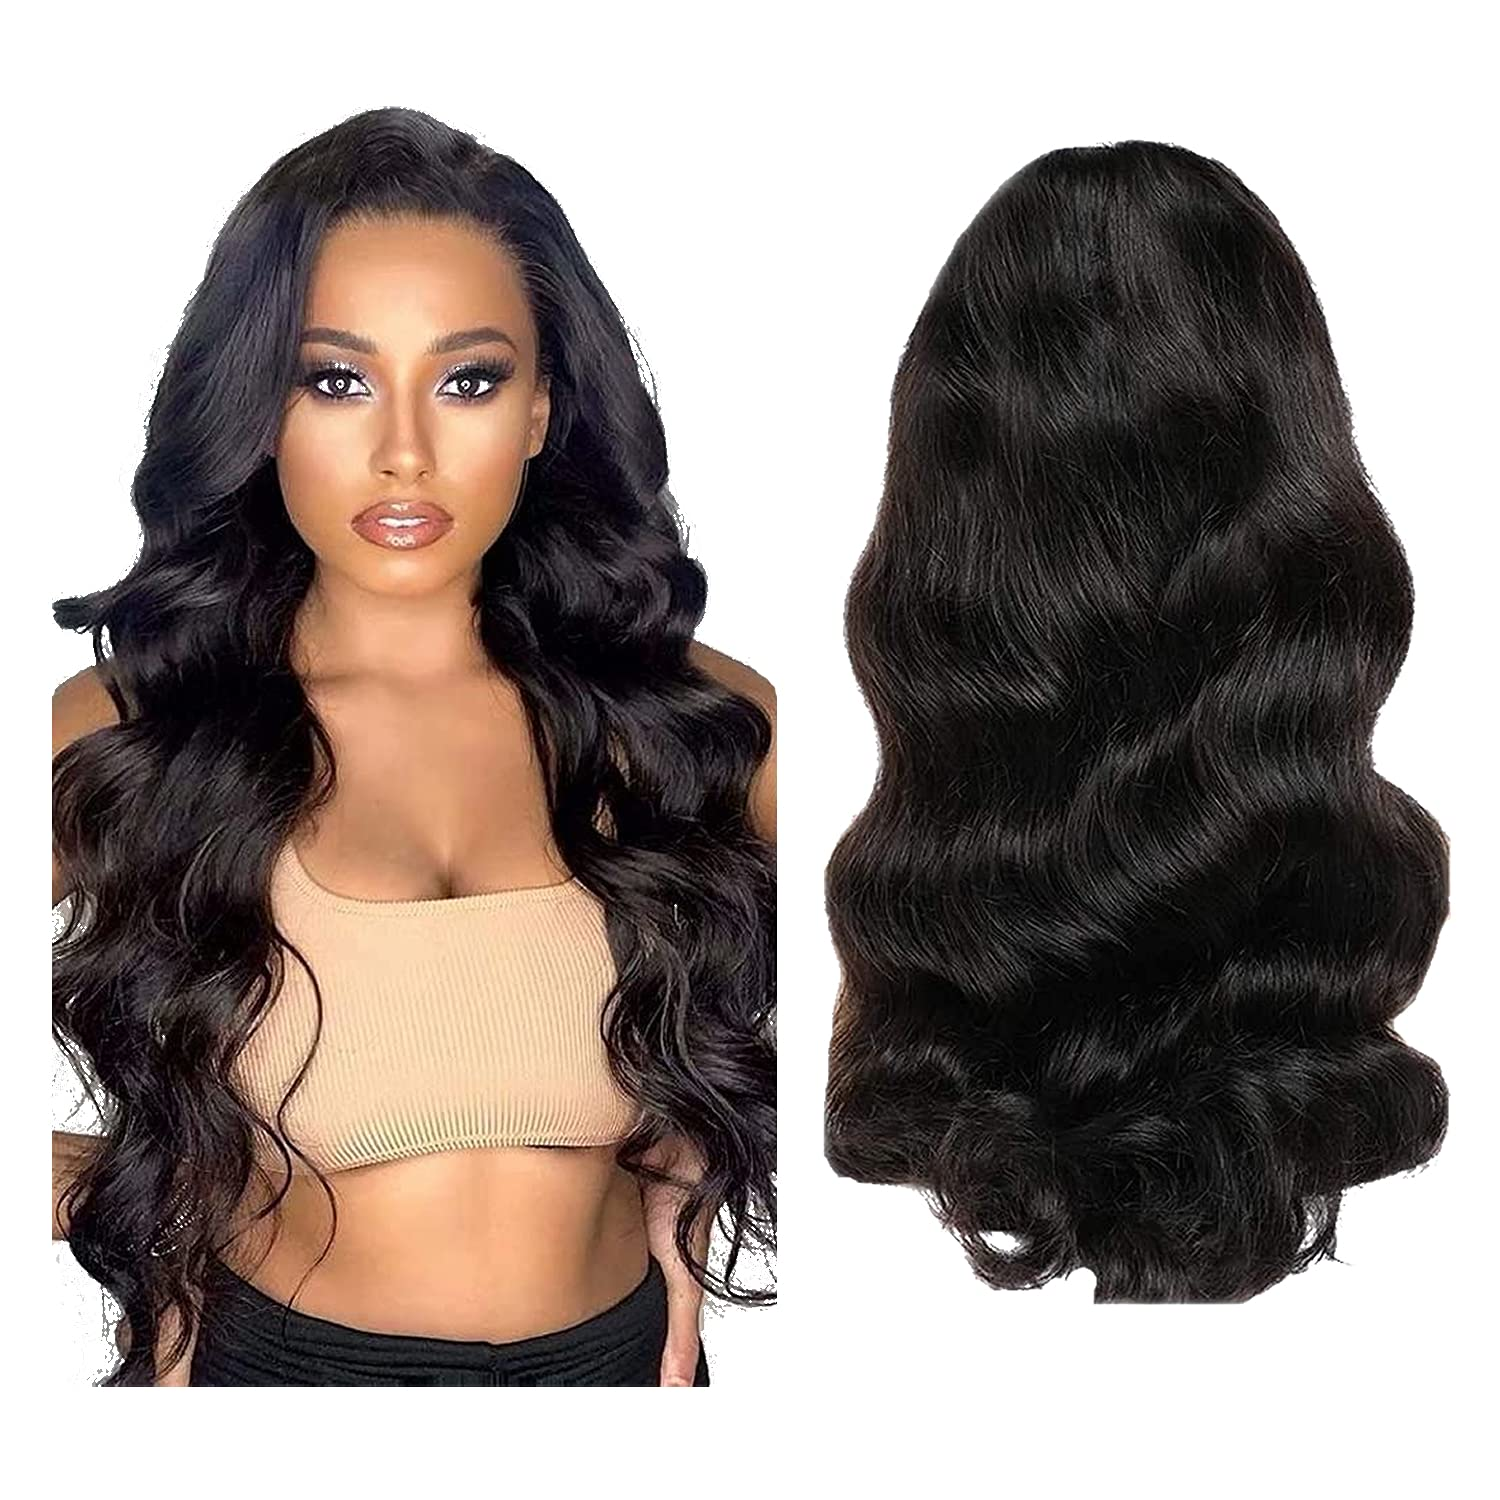 Fongly Body Wave Fees free!! Human Hair Wigs wig Women Black Lace Dedication for Front